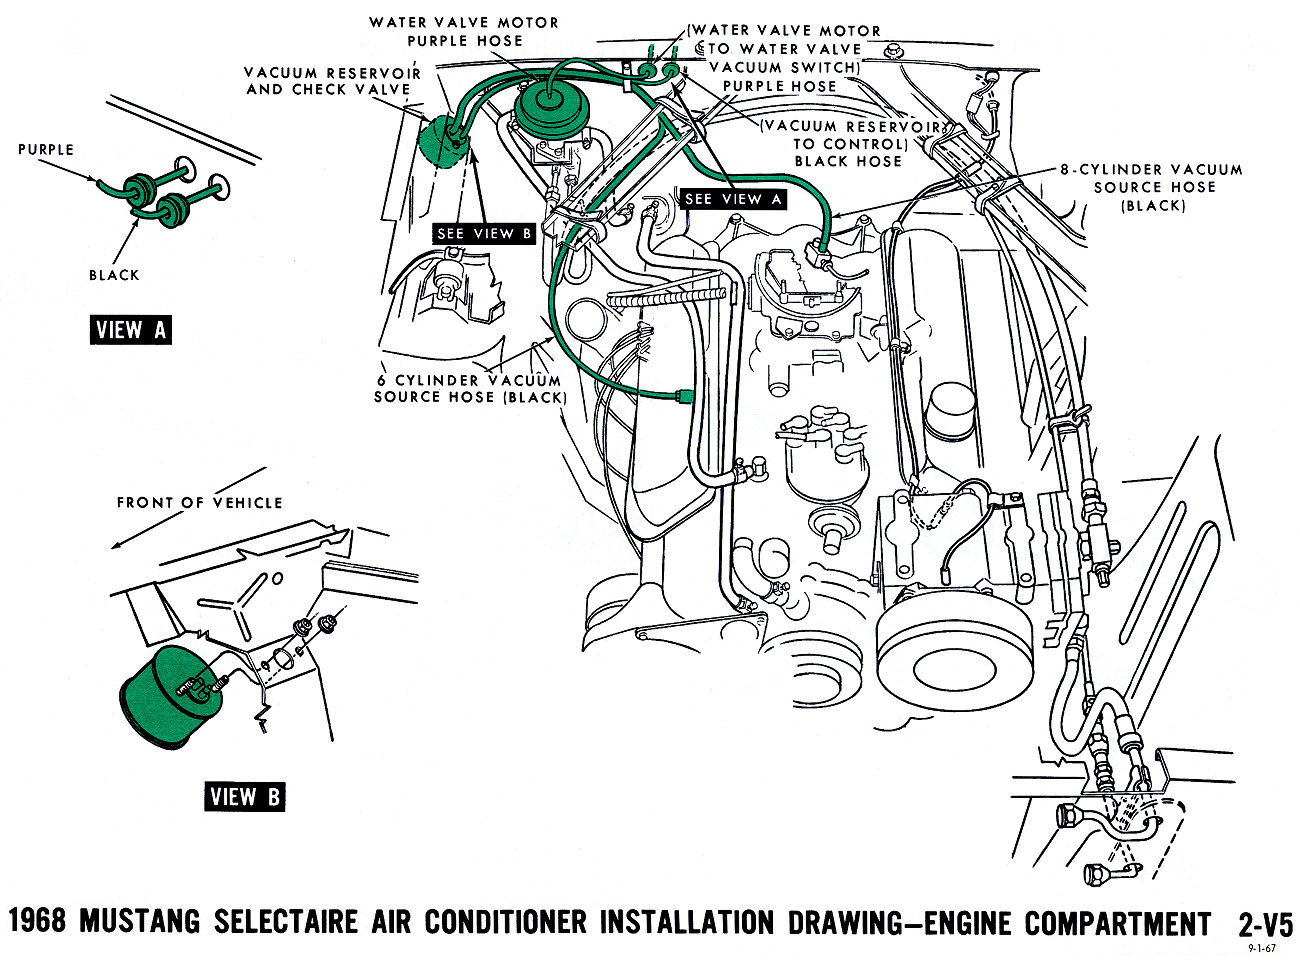 1968 Mustang Vacuum Diagrams on mustang wiring diagrams